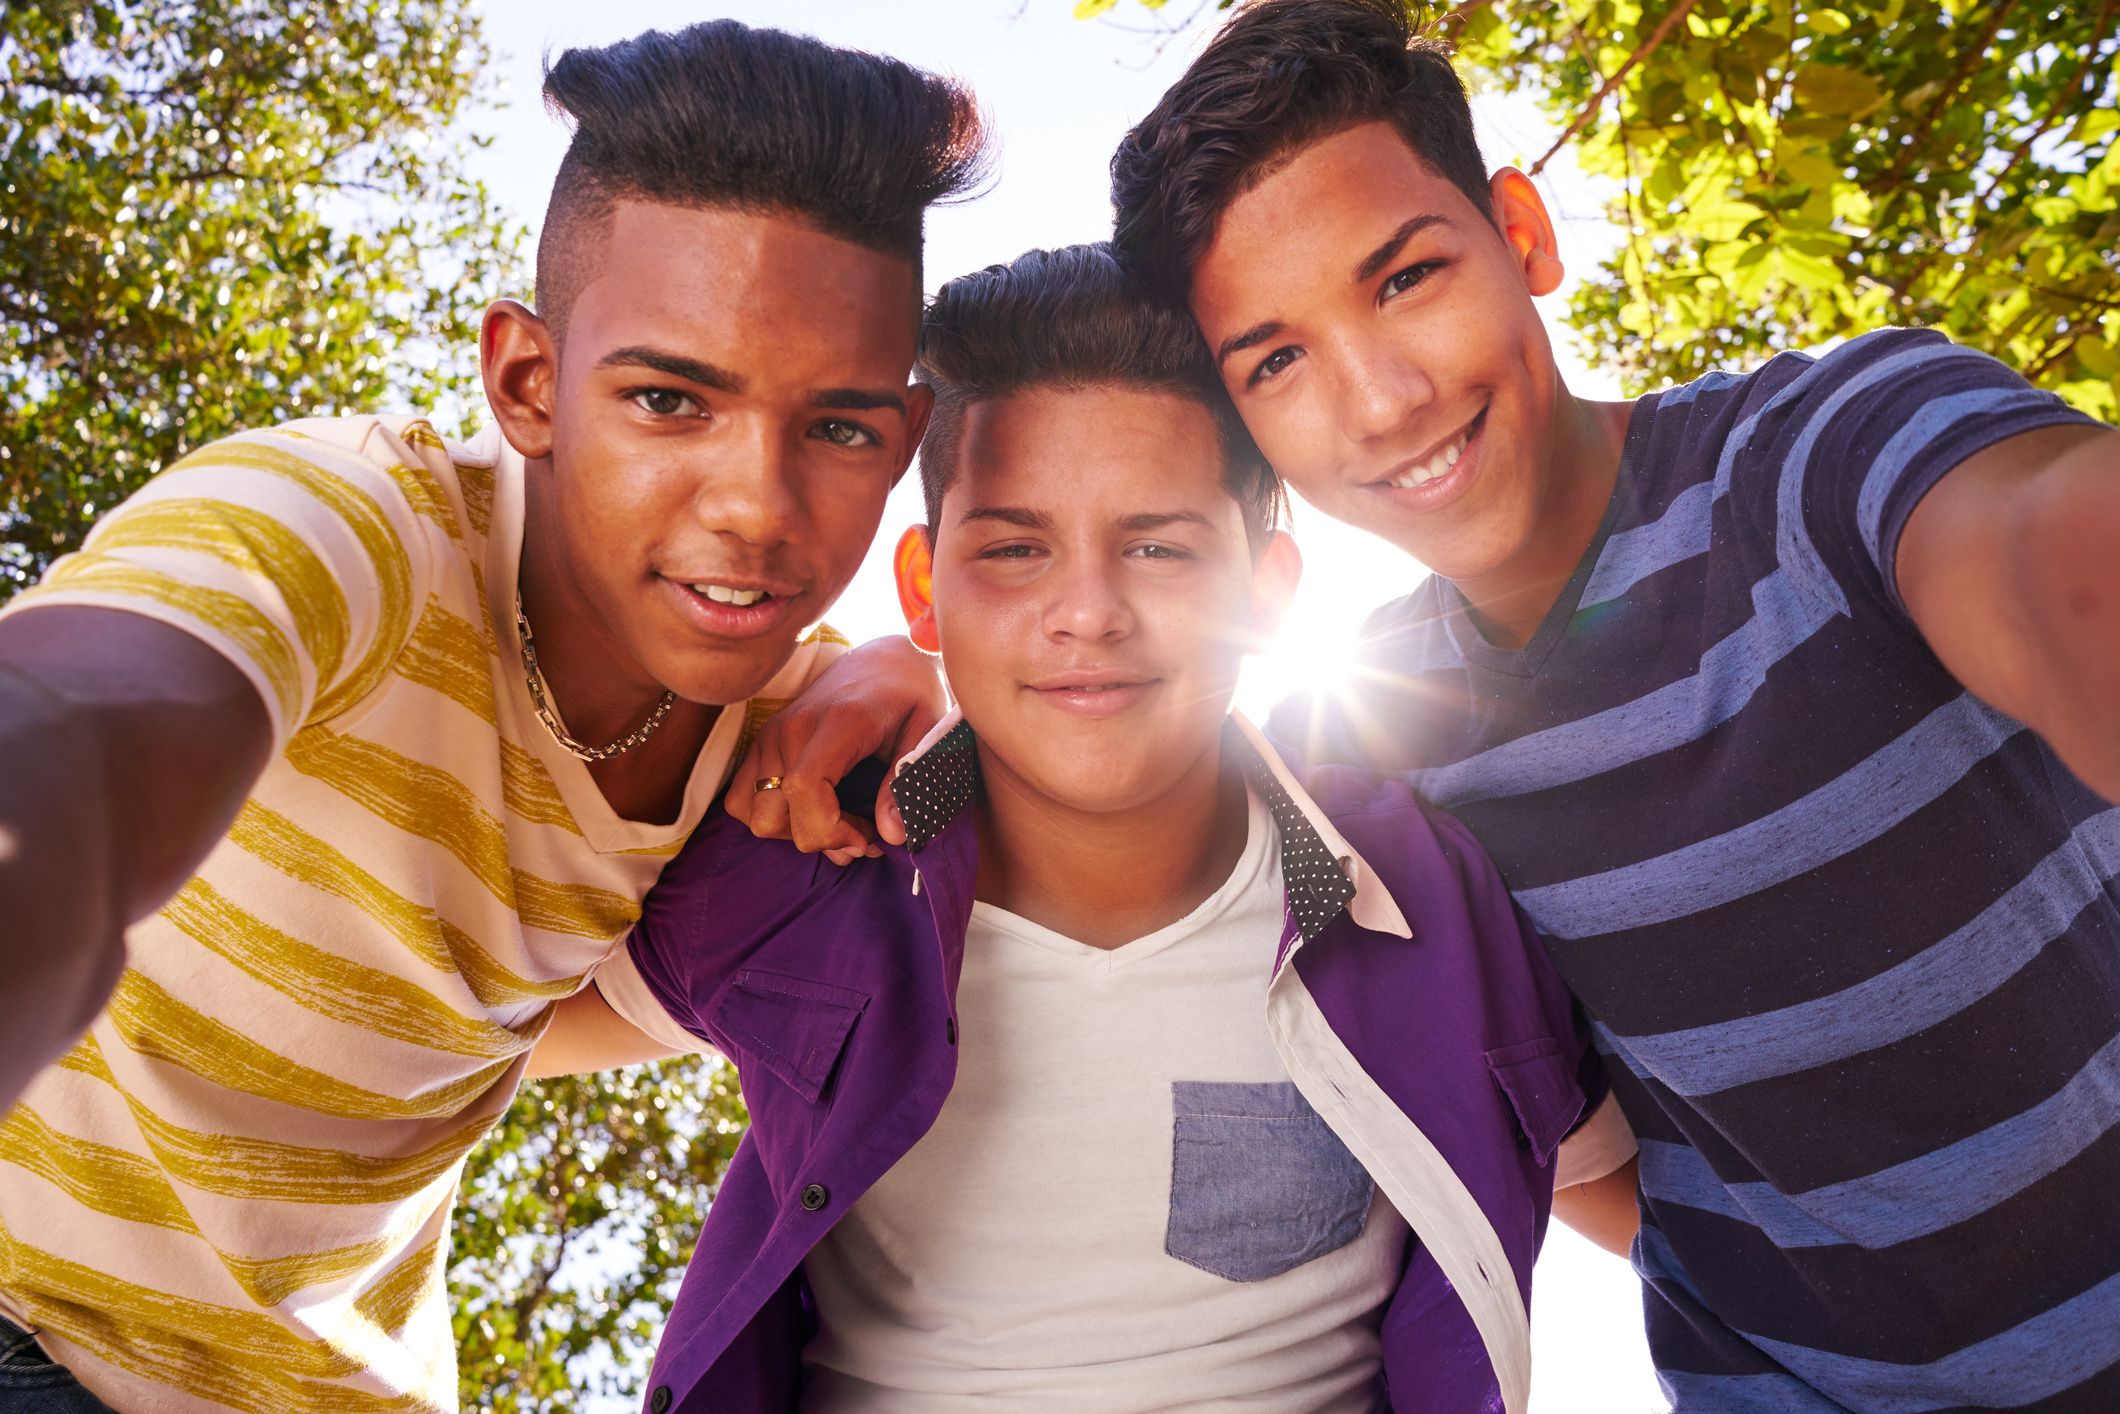 graphicstock-youth-culture-young-people-group-of-male-friends-multi-ethnic-teens-outdoors-teenagers-together-in-park-portrait-of-happy-boys-smiling-kids-looking-at-camera-slow-motion_BhfOb6PwW.jpg